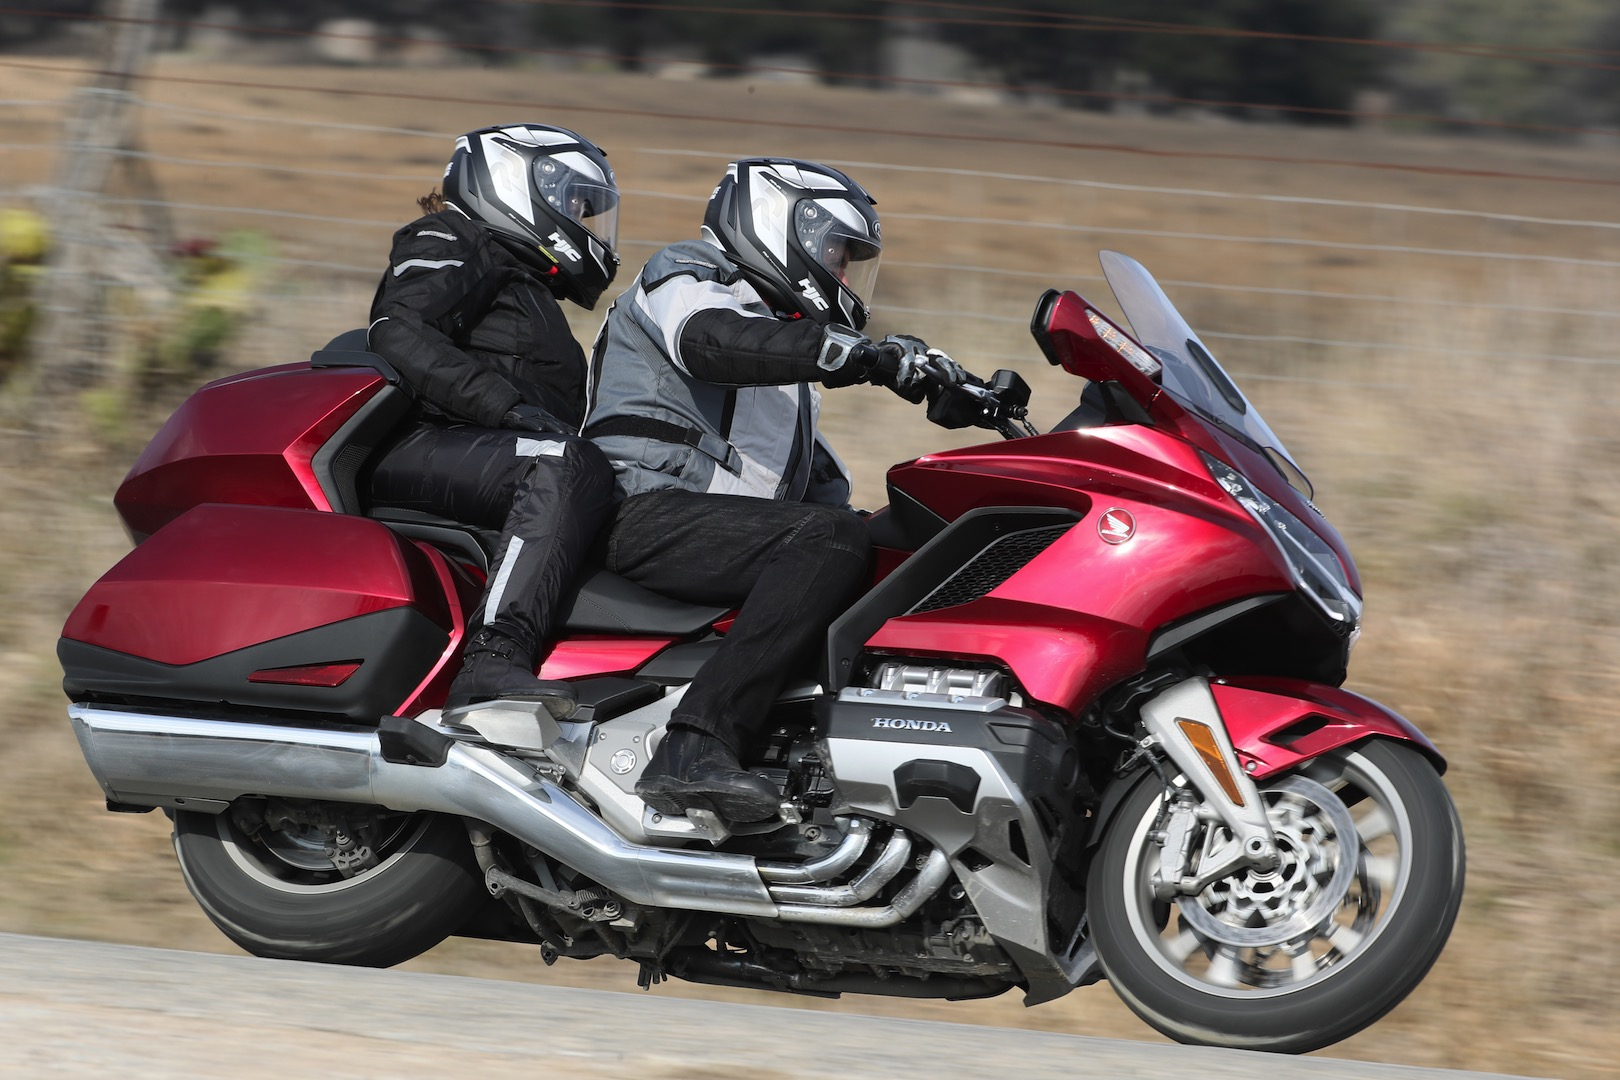 2018 Honda Gold Wing's upgrades takes everything up a notch - iMotorbike News